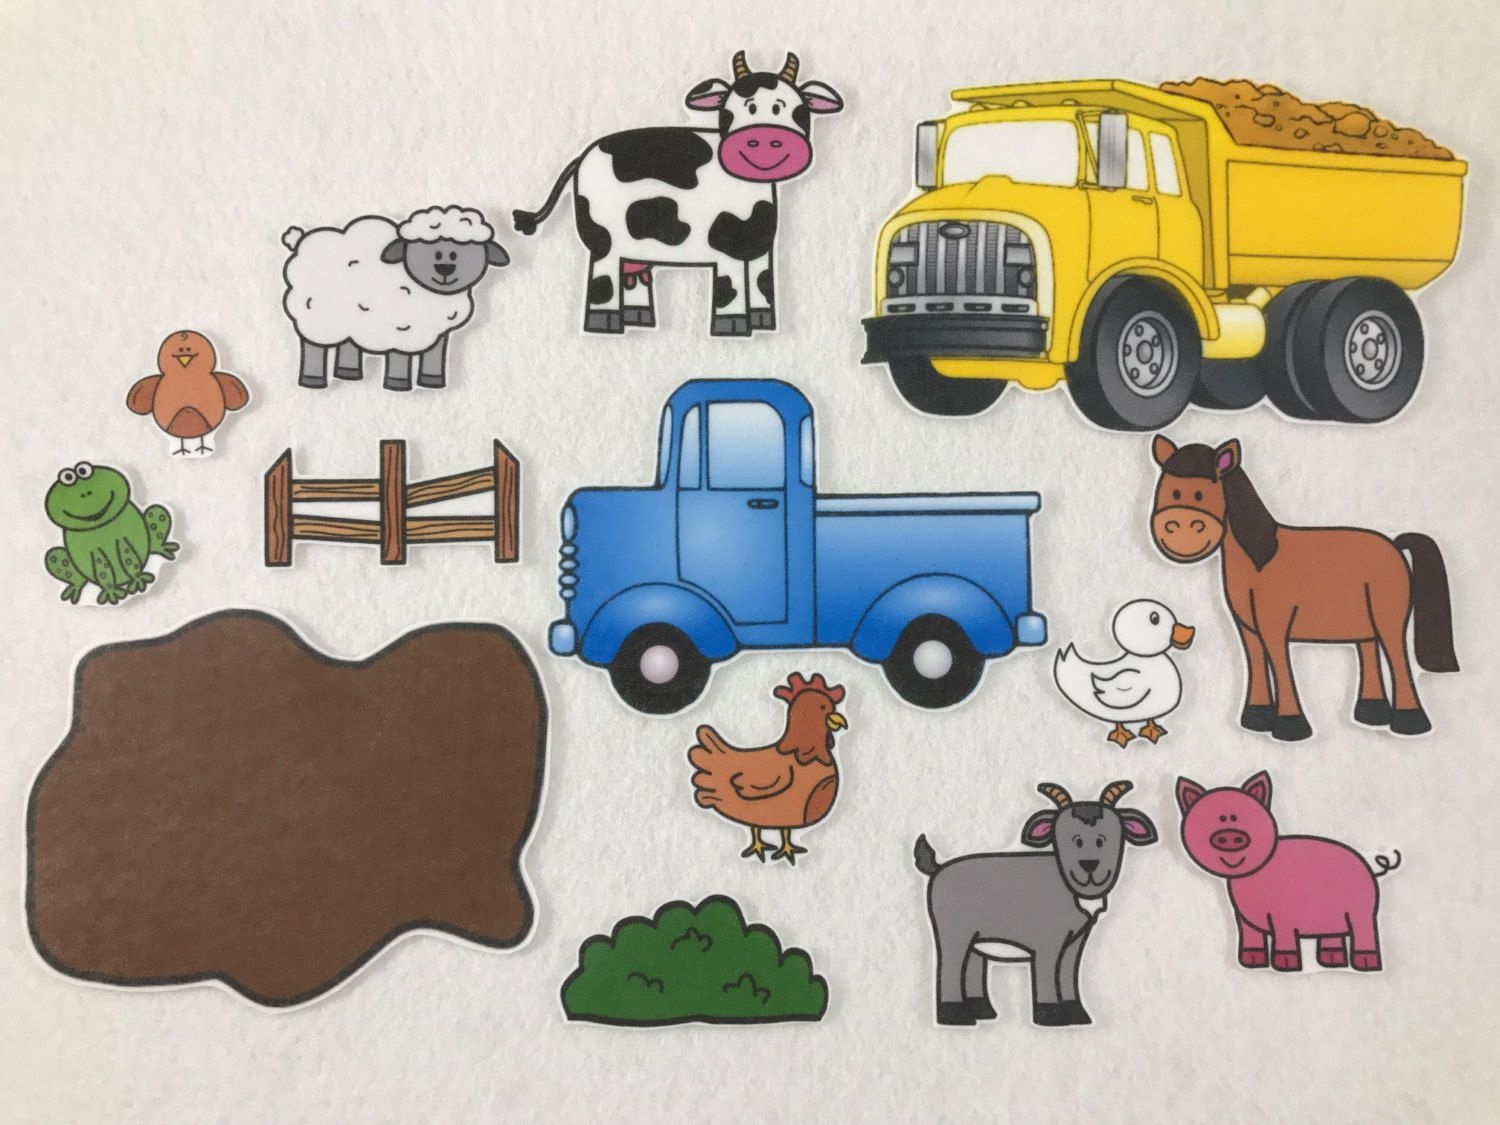 Little Blue Truck - Felt Board Story - Felt Stories - Speech Therapy - Little Blue Truck Free Printables